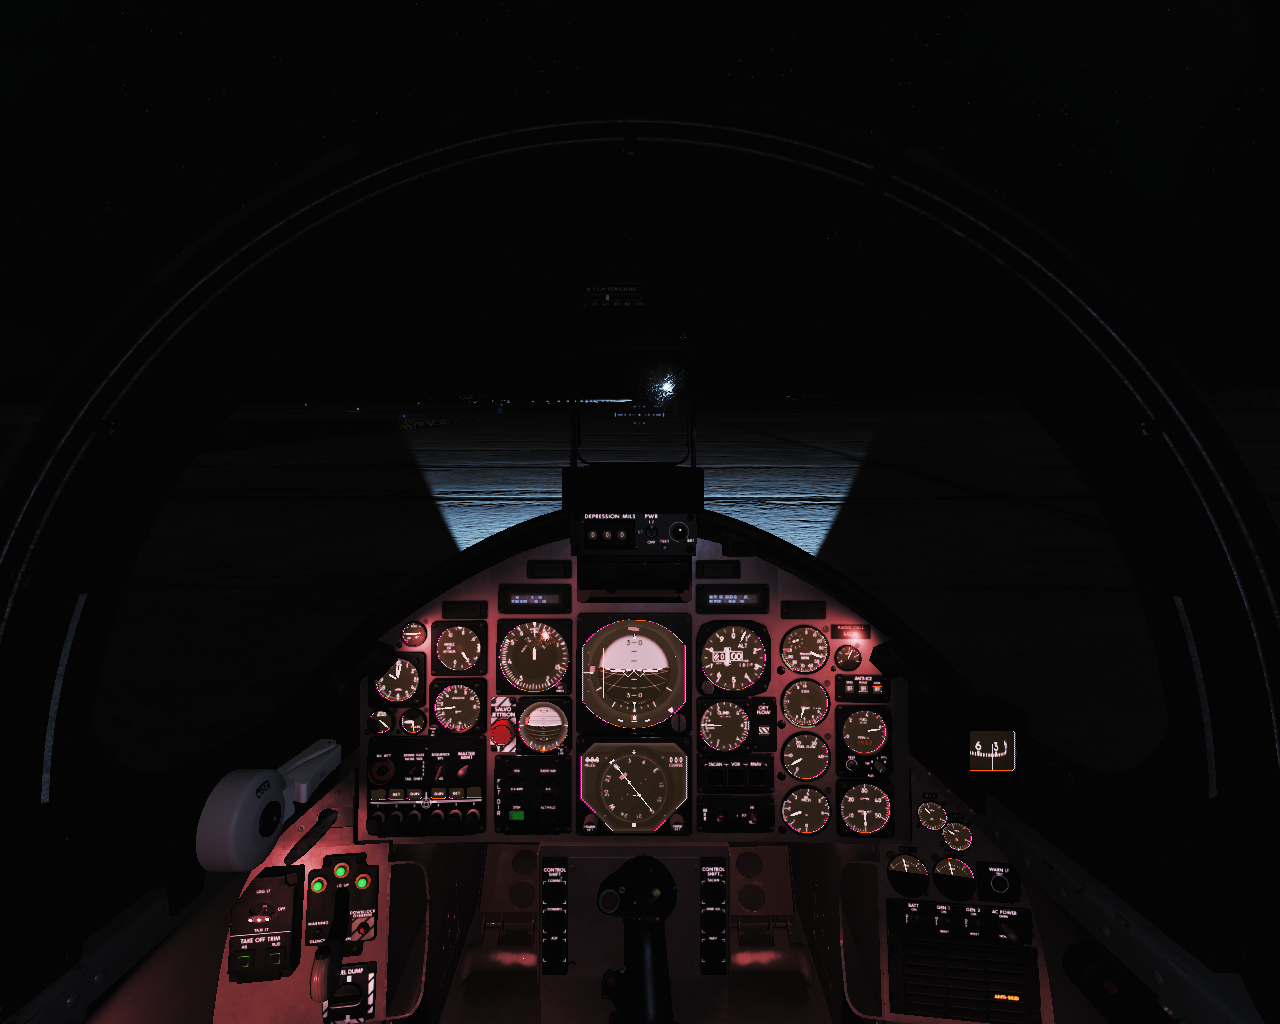 Nightime cockpit with gauge and flood lights on.